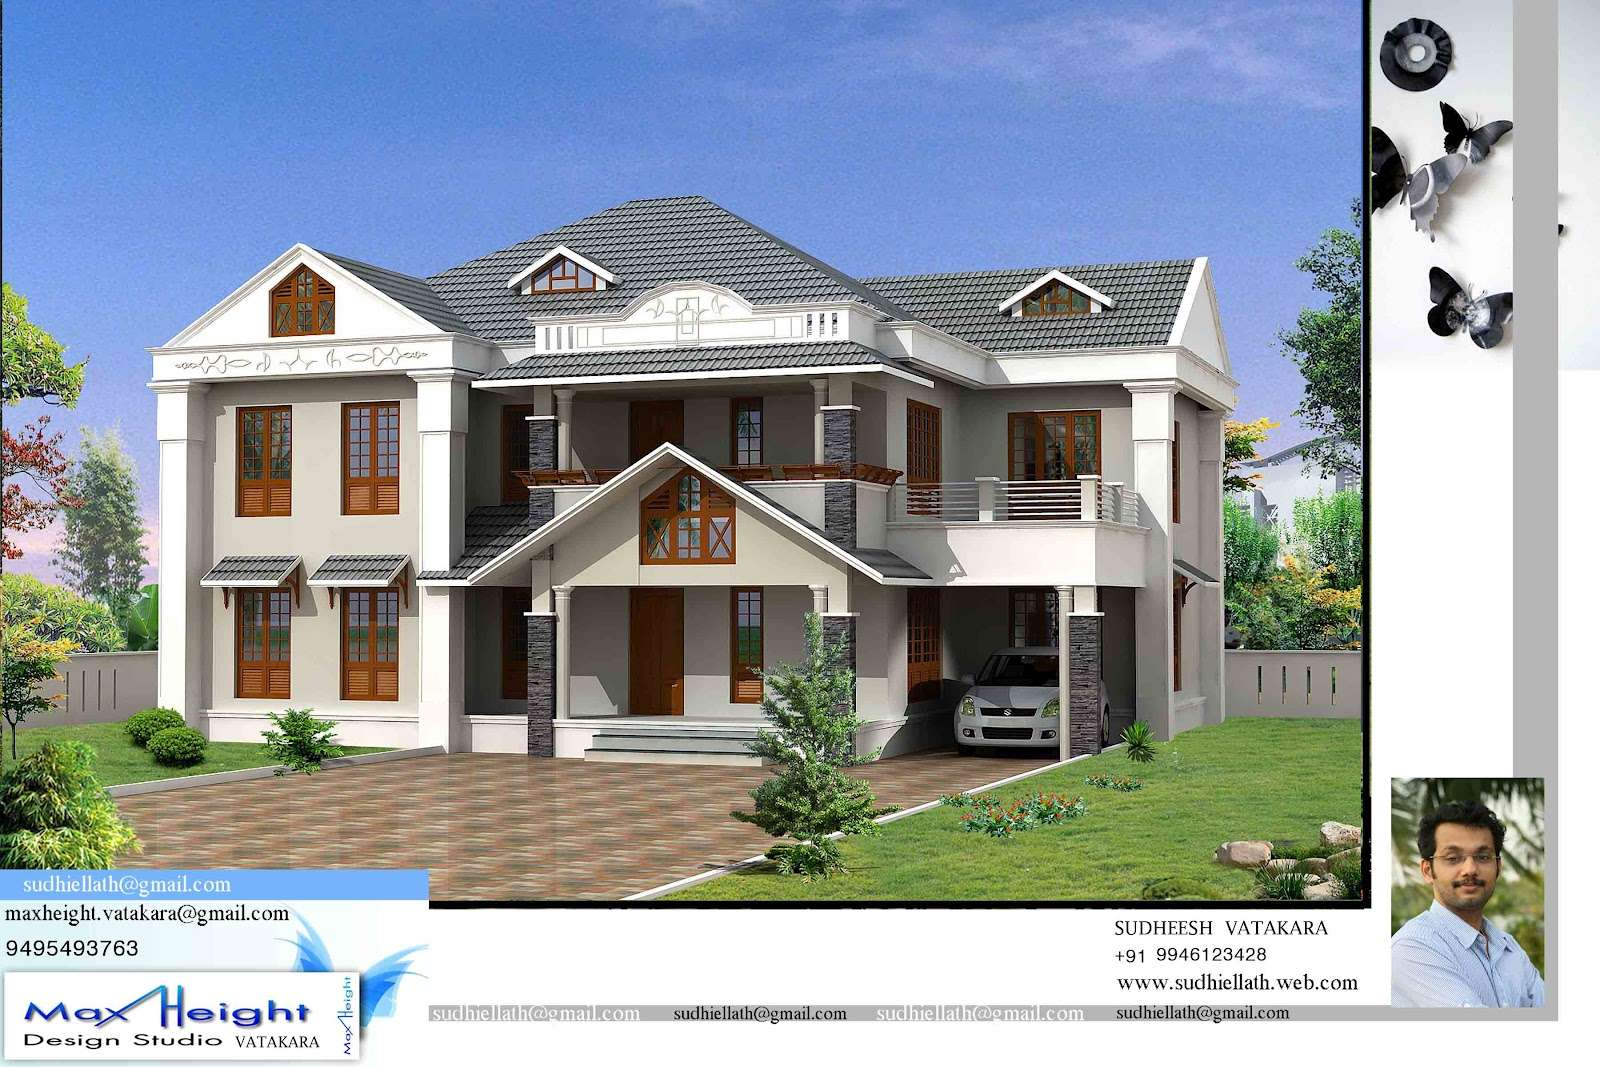 Model Houses Design Design House Model Cebu Real Estate For Sale